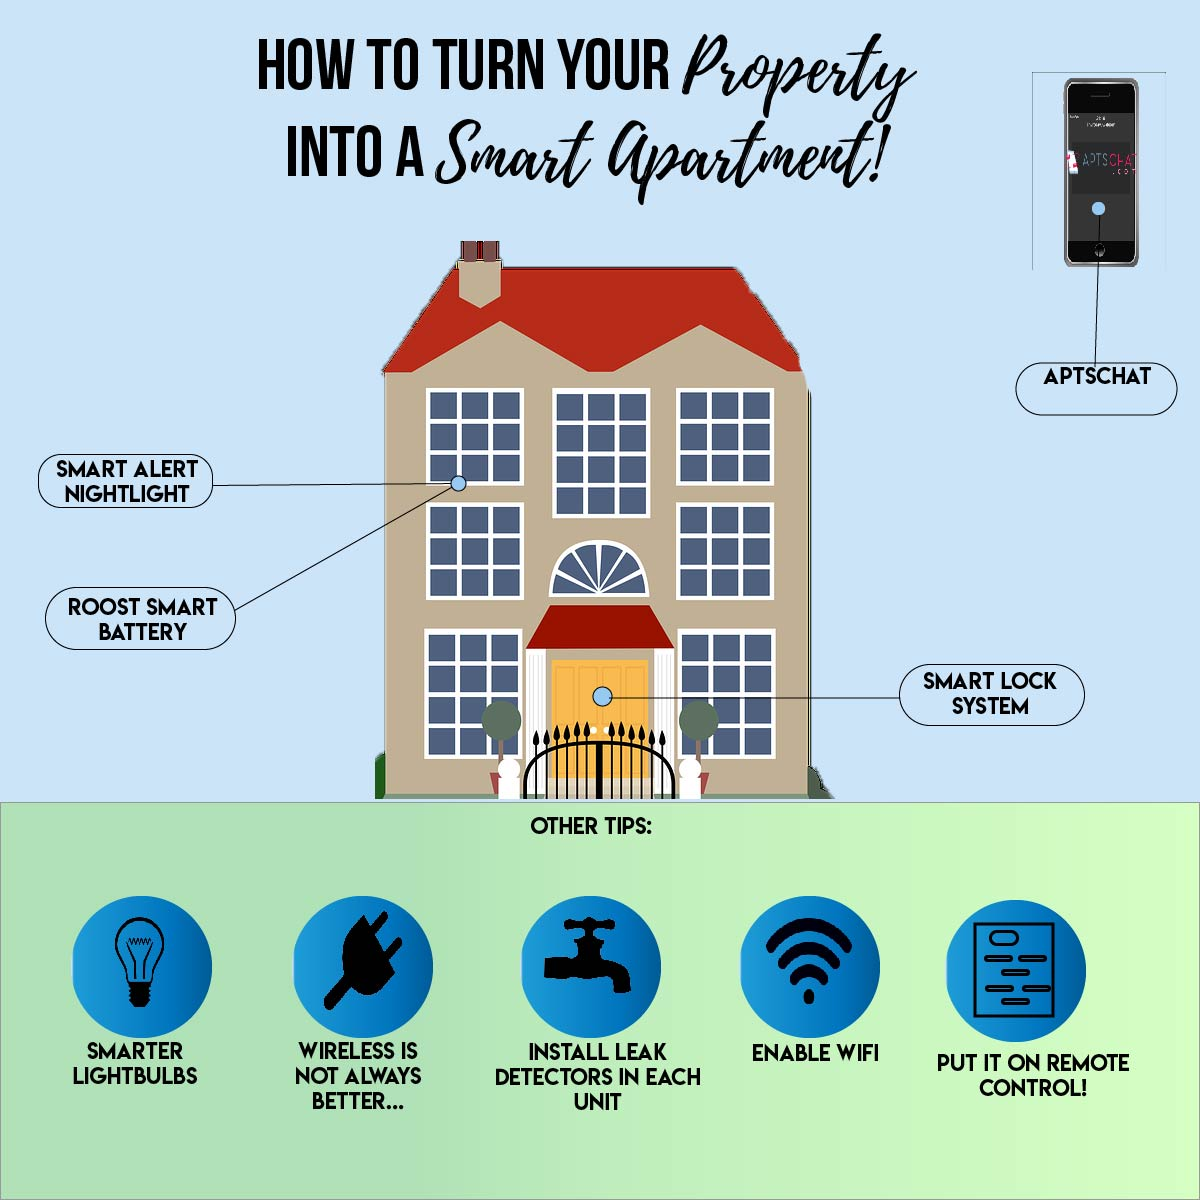 Turn your apartment into a smart apartment